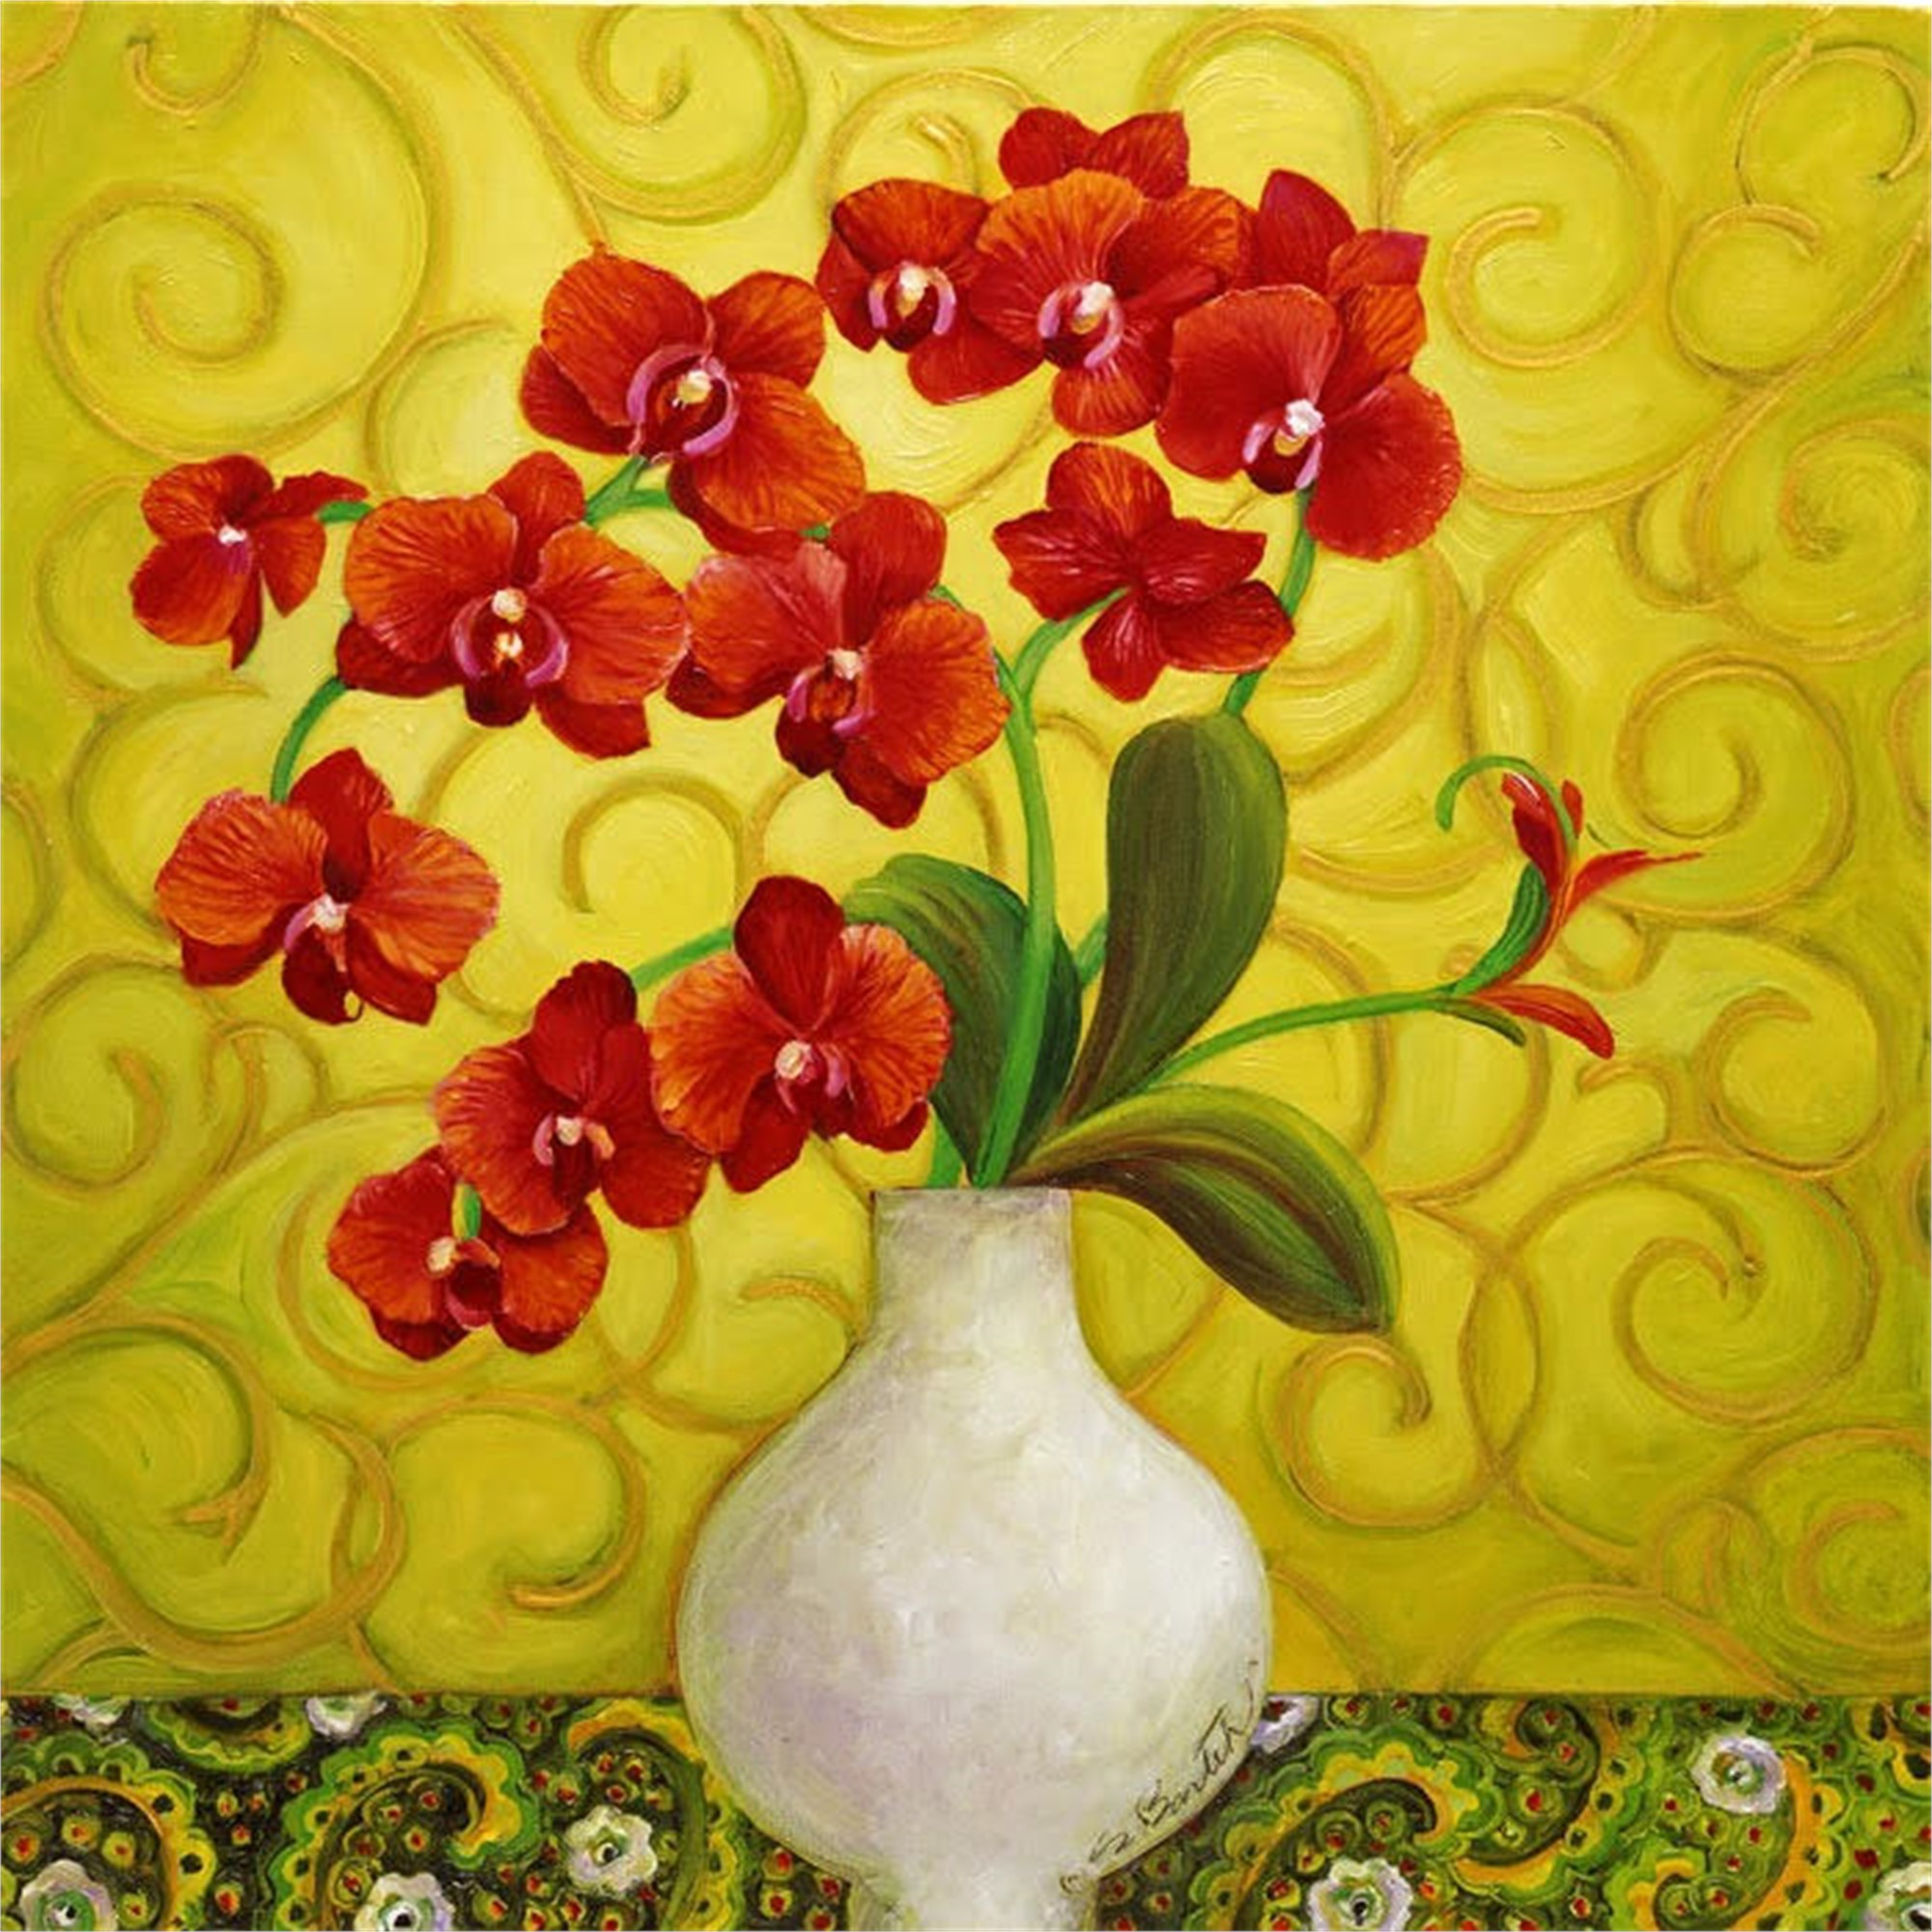 Red Orchids by Shelly Bartek